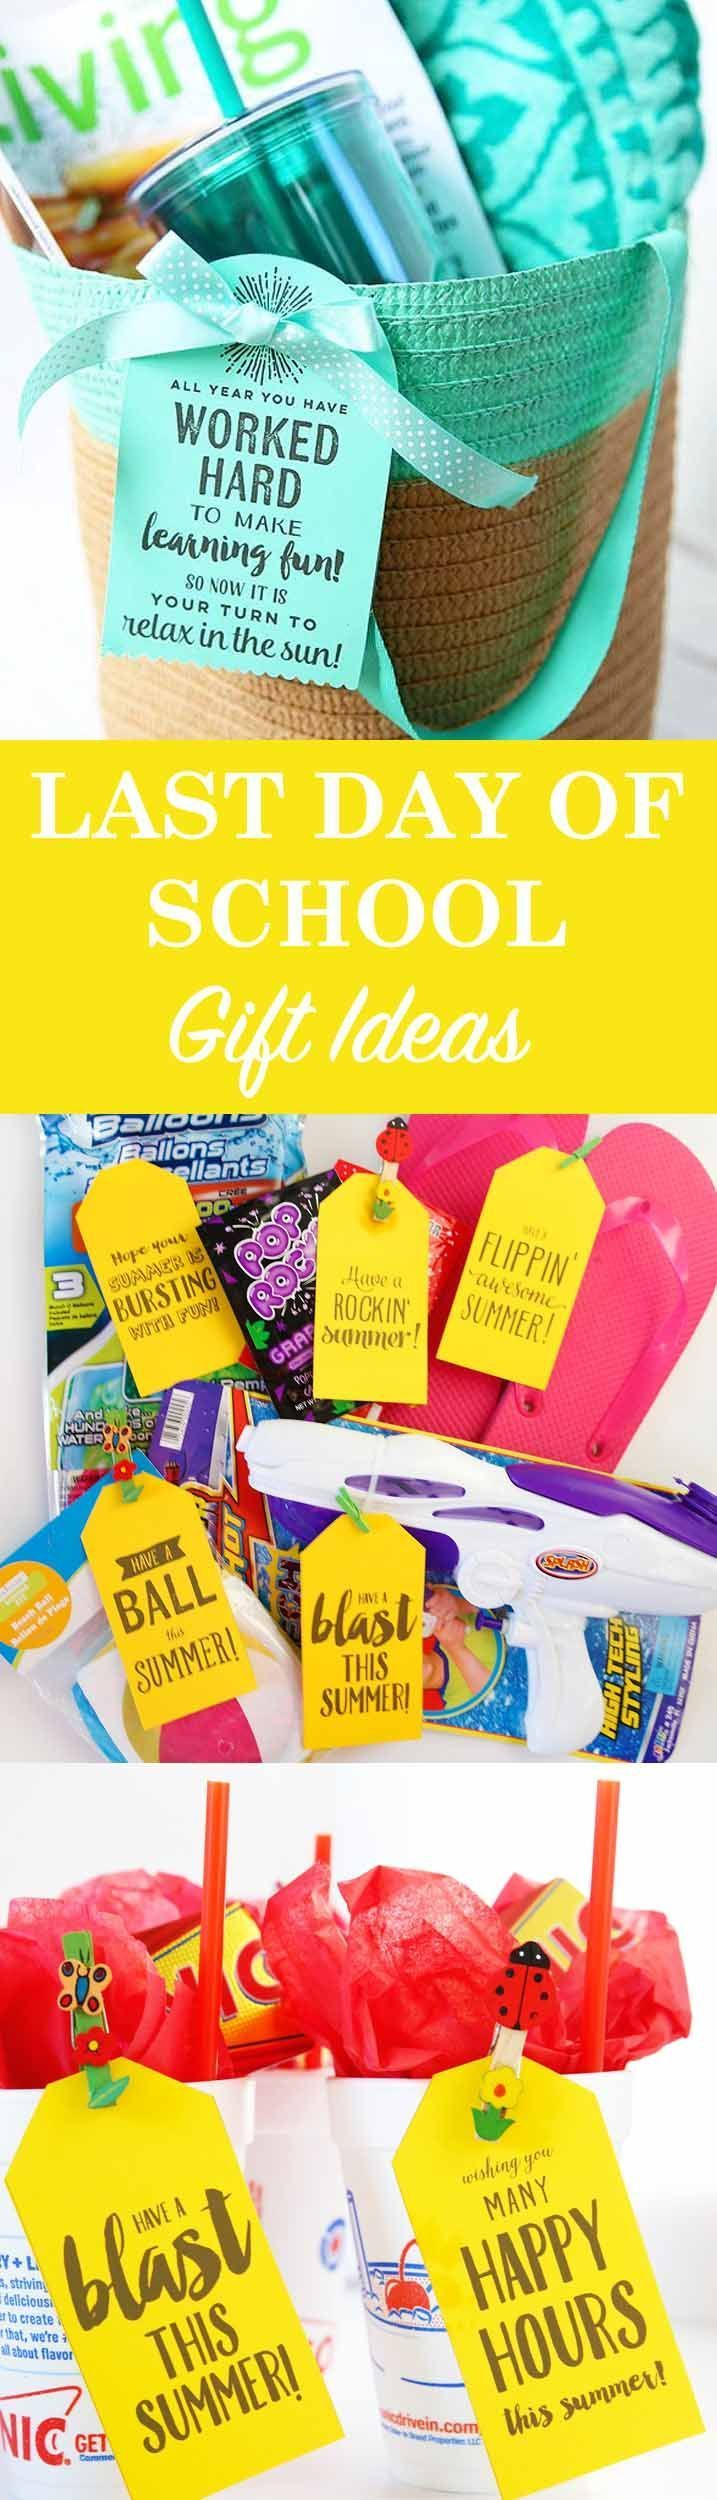 The best gift ideas for the end of school! Easy ideas for your kids, teachers, and grads. Use the free printable tags to pair with your gift for a simple handmade gift idea.